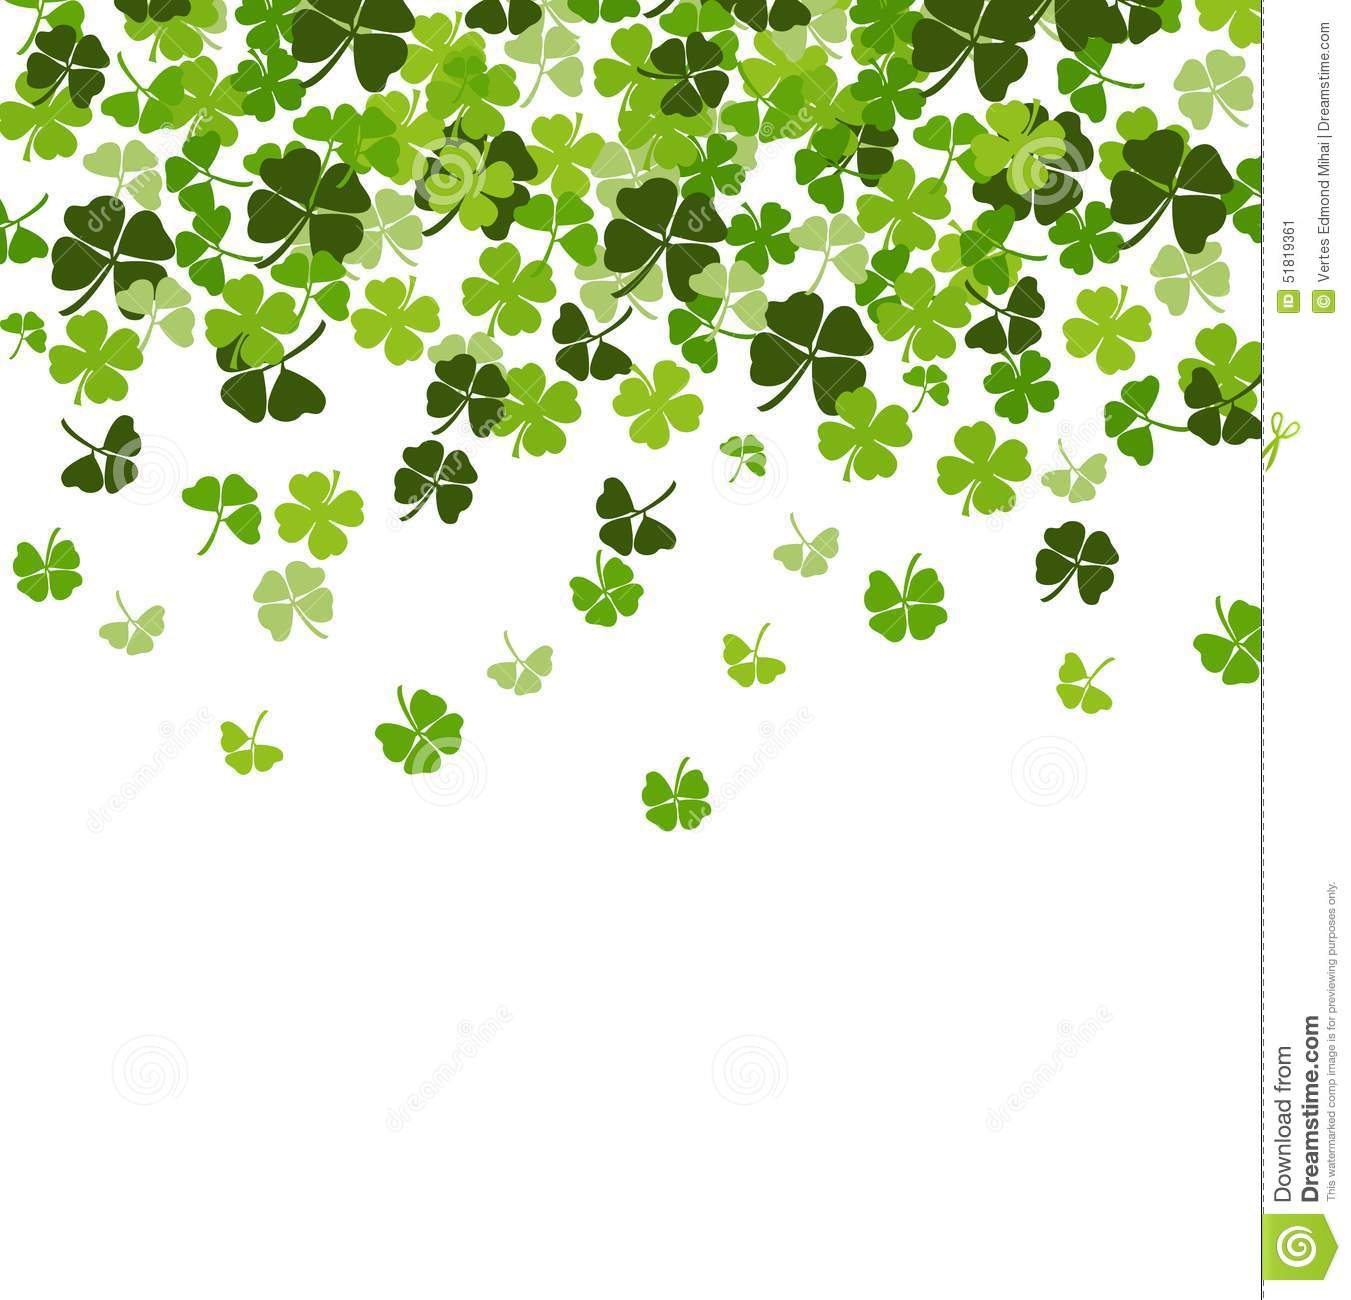 patricks day shamrock background-#42